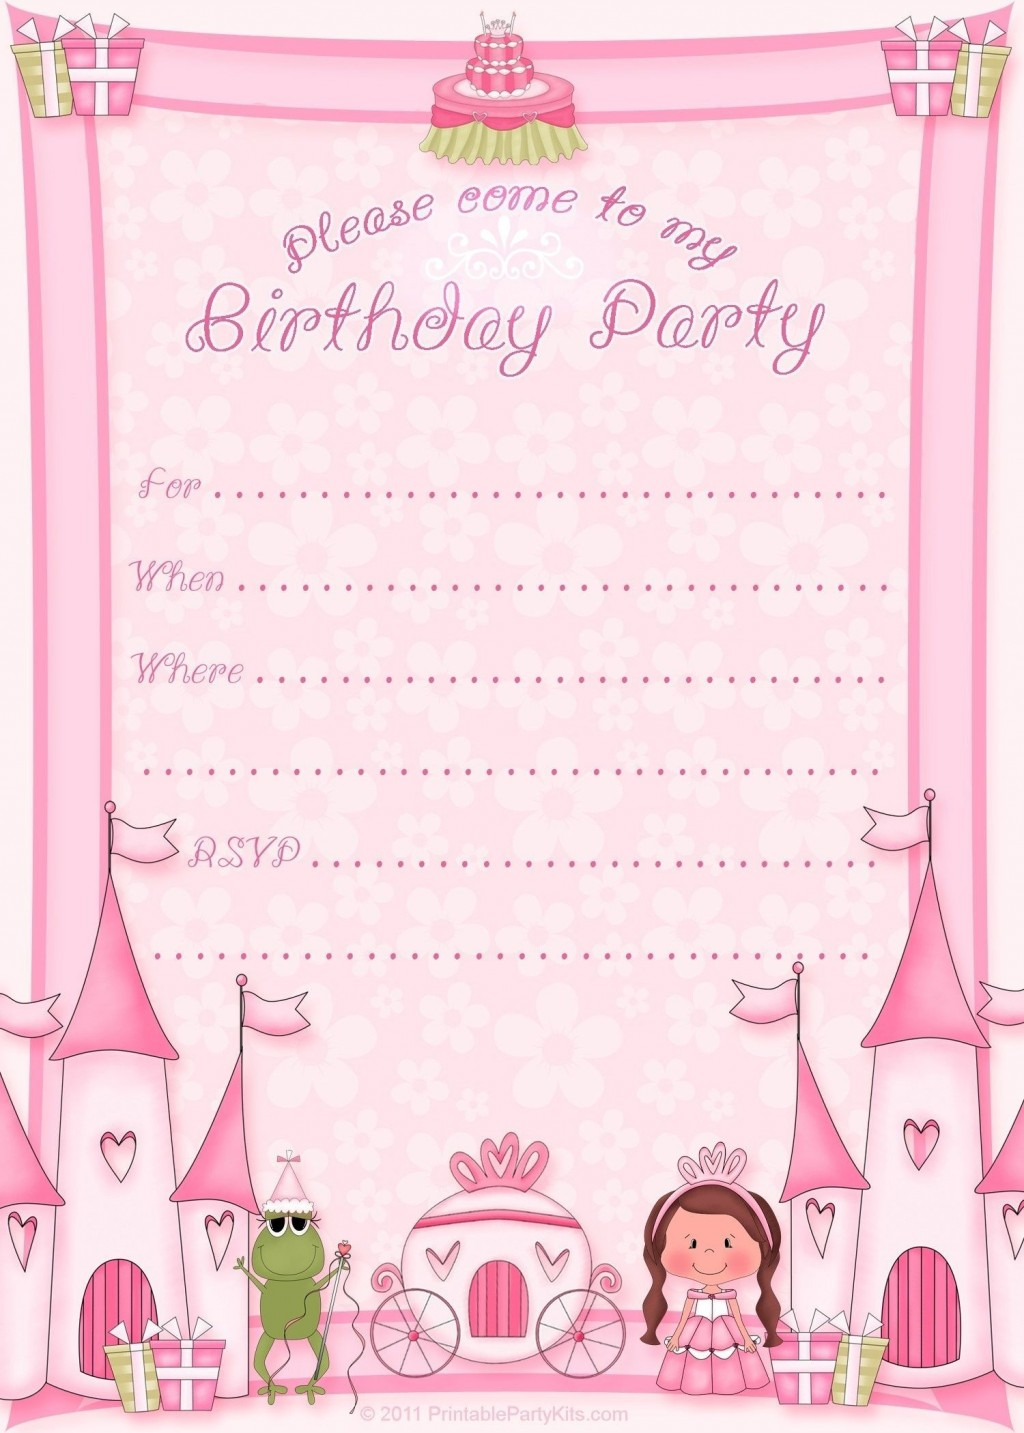 003 Wonderful Birthday Invitation Template Free Download Inspiration  Editable Video Twin First Downloadable 18th PrintableLarge